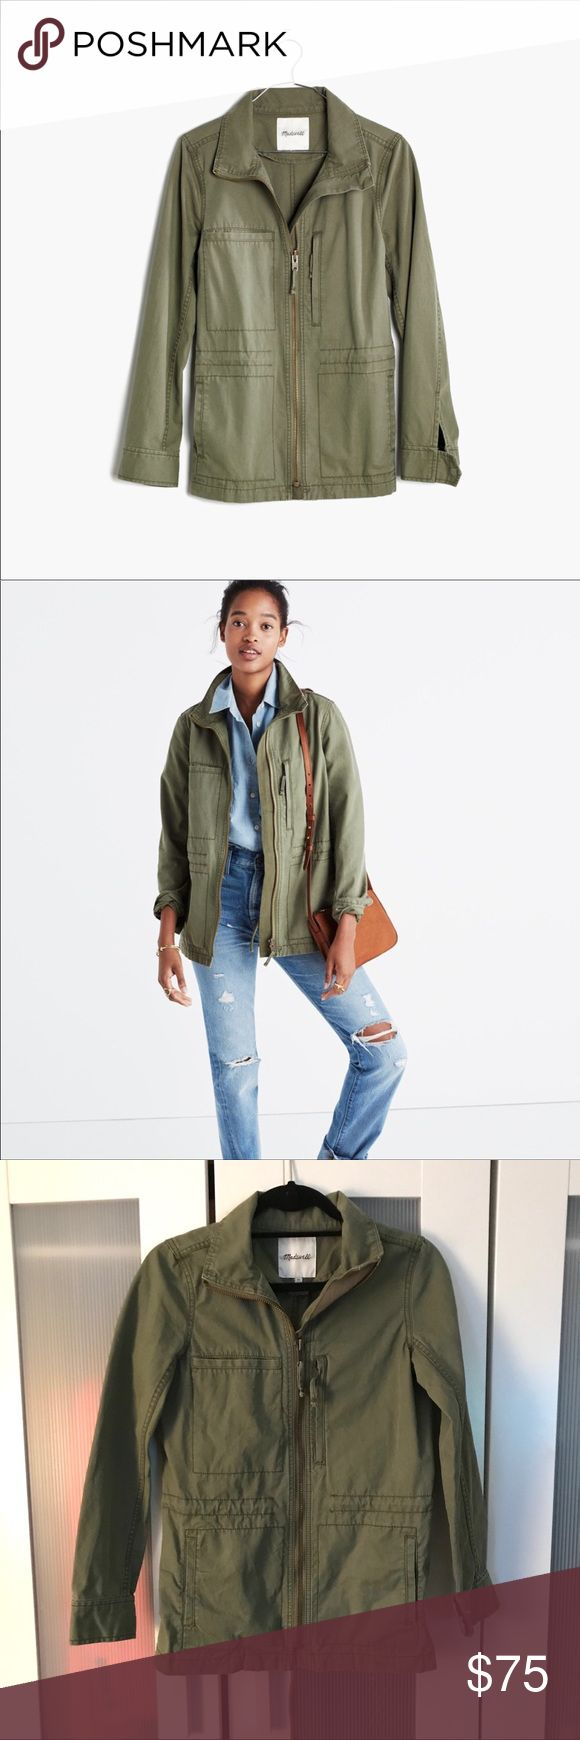 "Madewell ""Fleet"" Utility Military Jacket - Size XS A streamlined military-inspired style with clean lines, a stand-up collar, zip pockets and a waist-defining drawstring. It's a best seller and one you'll hold on to for years to come.    True to size. Cotton. Machine wash.  Excellent preowned condition.  Offers welcomed!  P15 Madewell Jackets & Coats Utility Jackets"